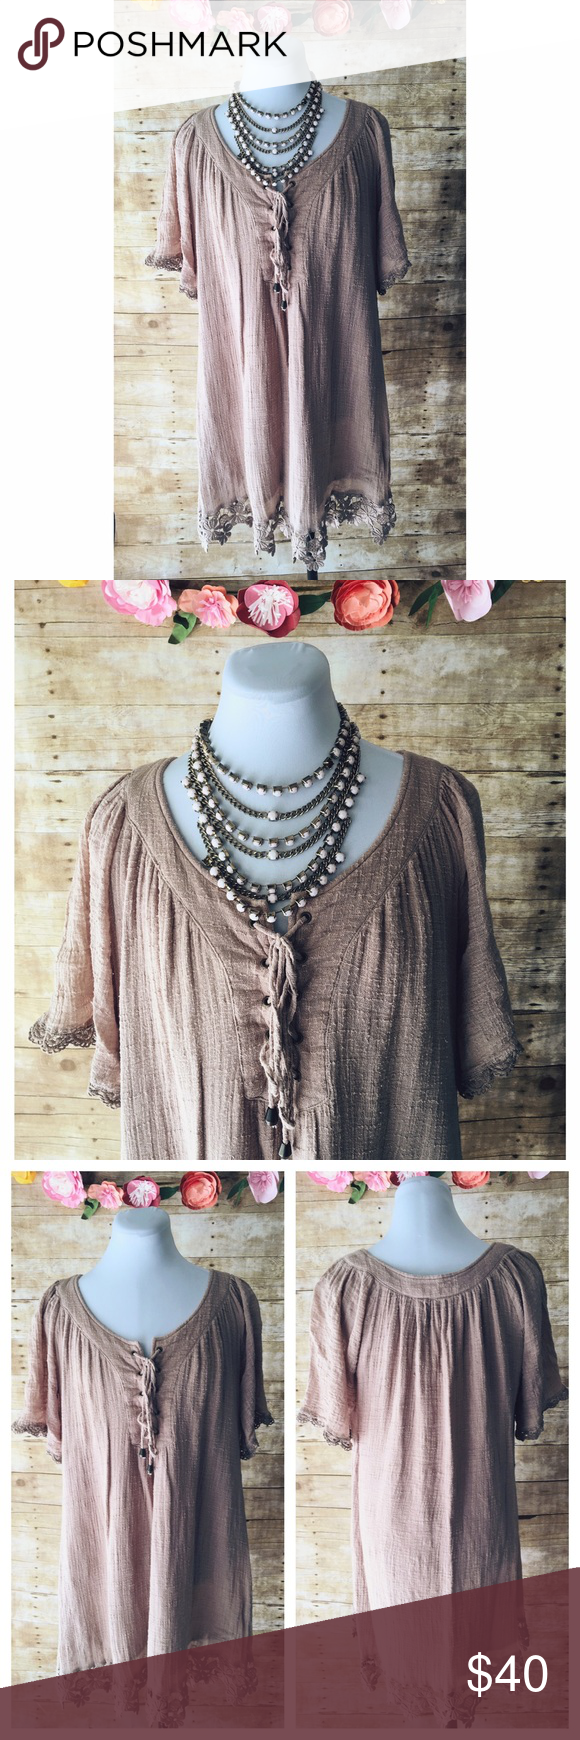 """Boho Lovestitch Taupe Dress Comfy, flowy, boho style dress in taupe/tan with lace trim by Lovestitch. Features tie neckline & lined. This has been washed/worn a bit but still in good condition. Material is soft. See close up photos to see material. It looks snagged but it is not that is how the material is made throughout dress. This dress is meant to fit flowy. Flat measurements: bust: 22""""; length 32"""" not including lace trim. Lovestitch Dresses"""